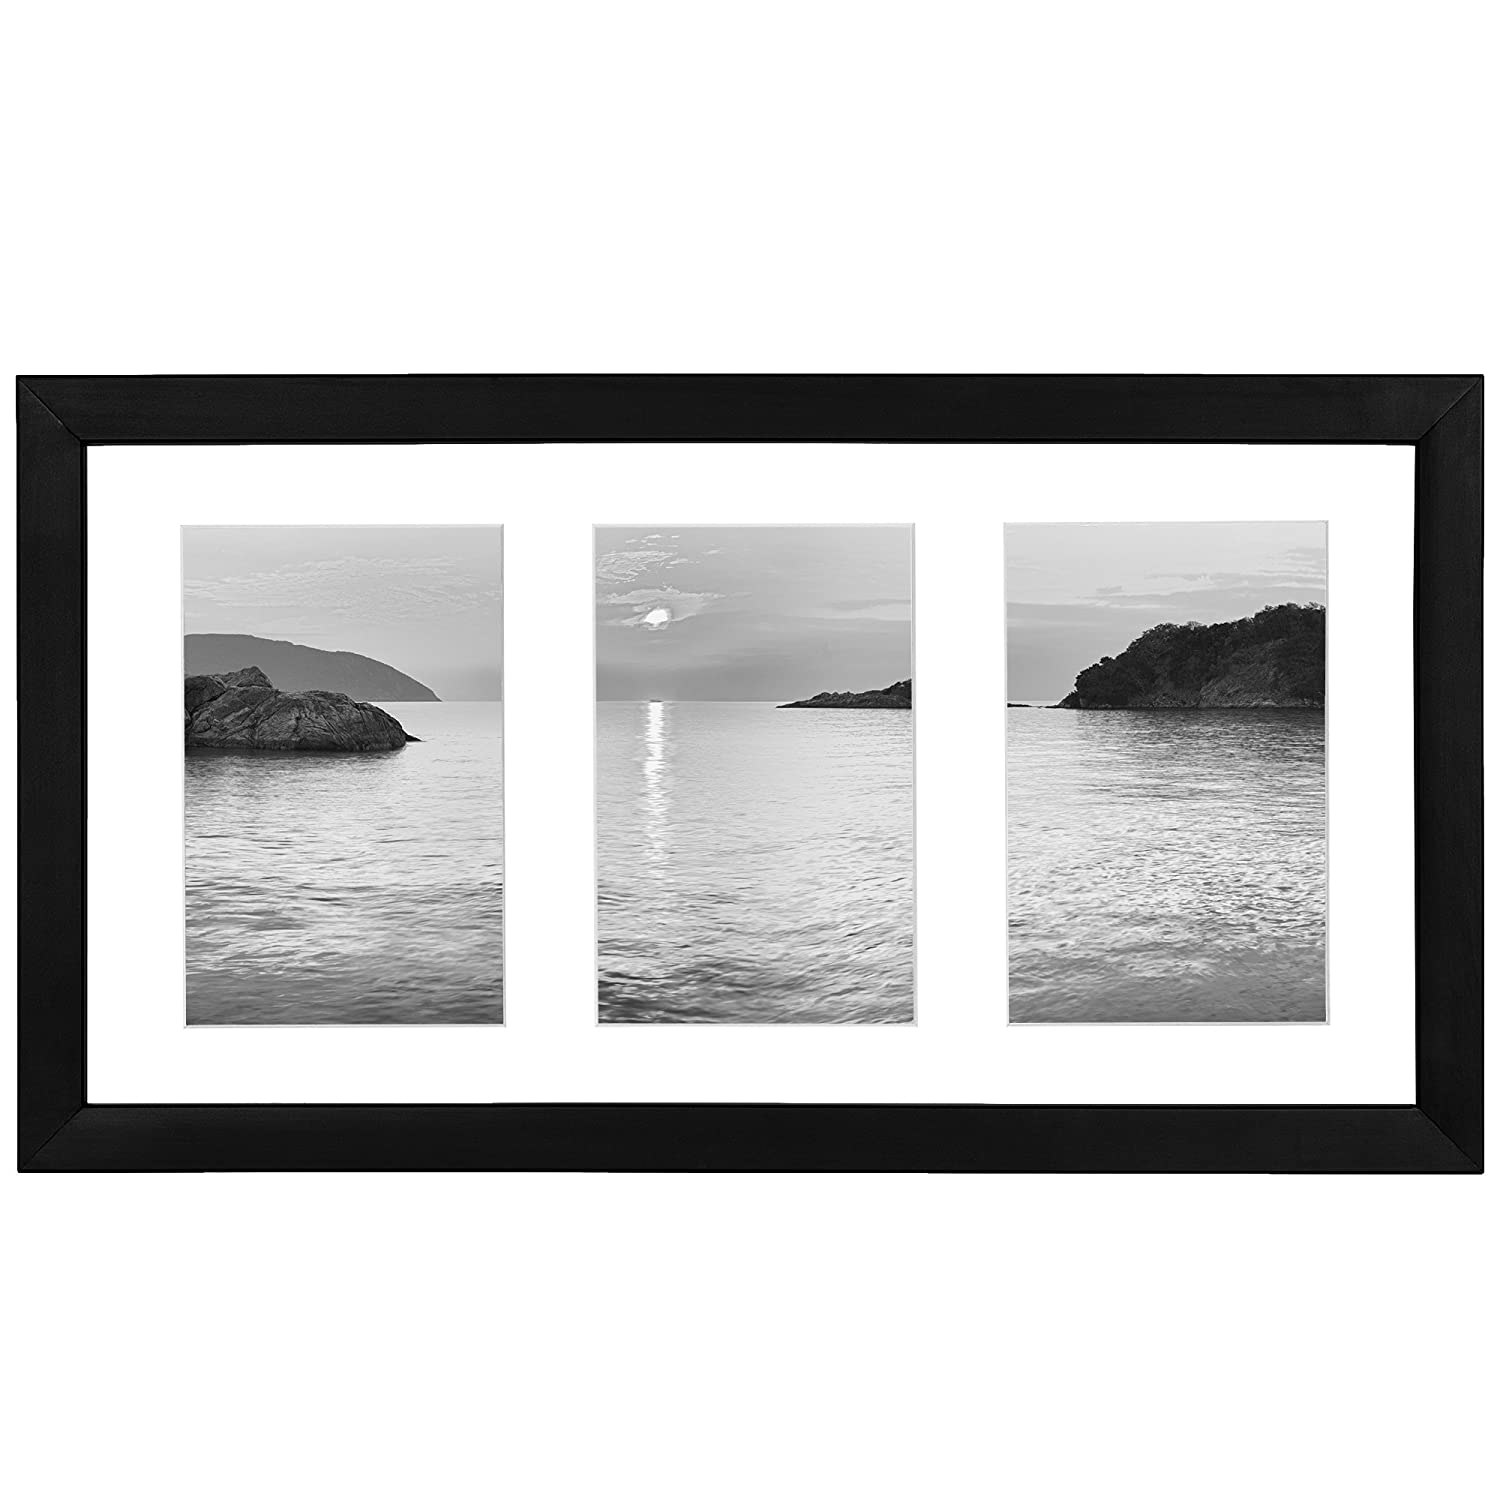 Amazon.com - Collage Picture Frame 4x6 - Displays Three 4x6 Inch ...